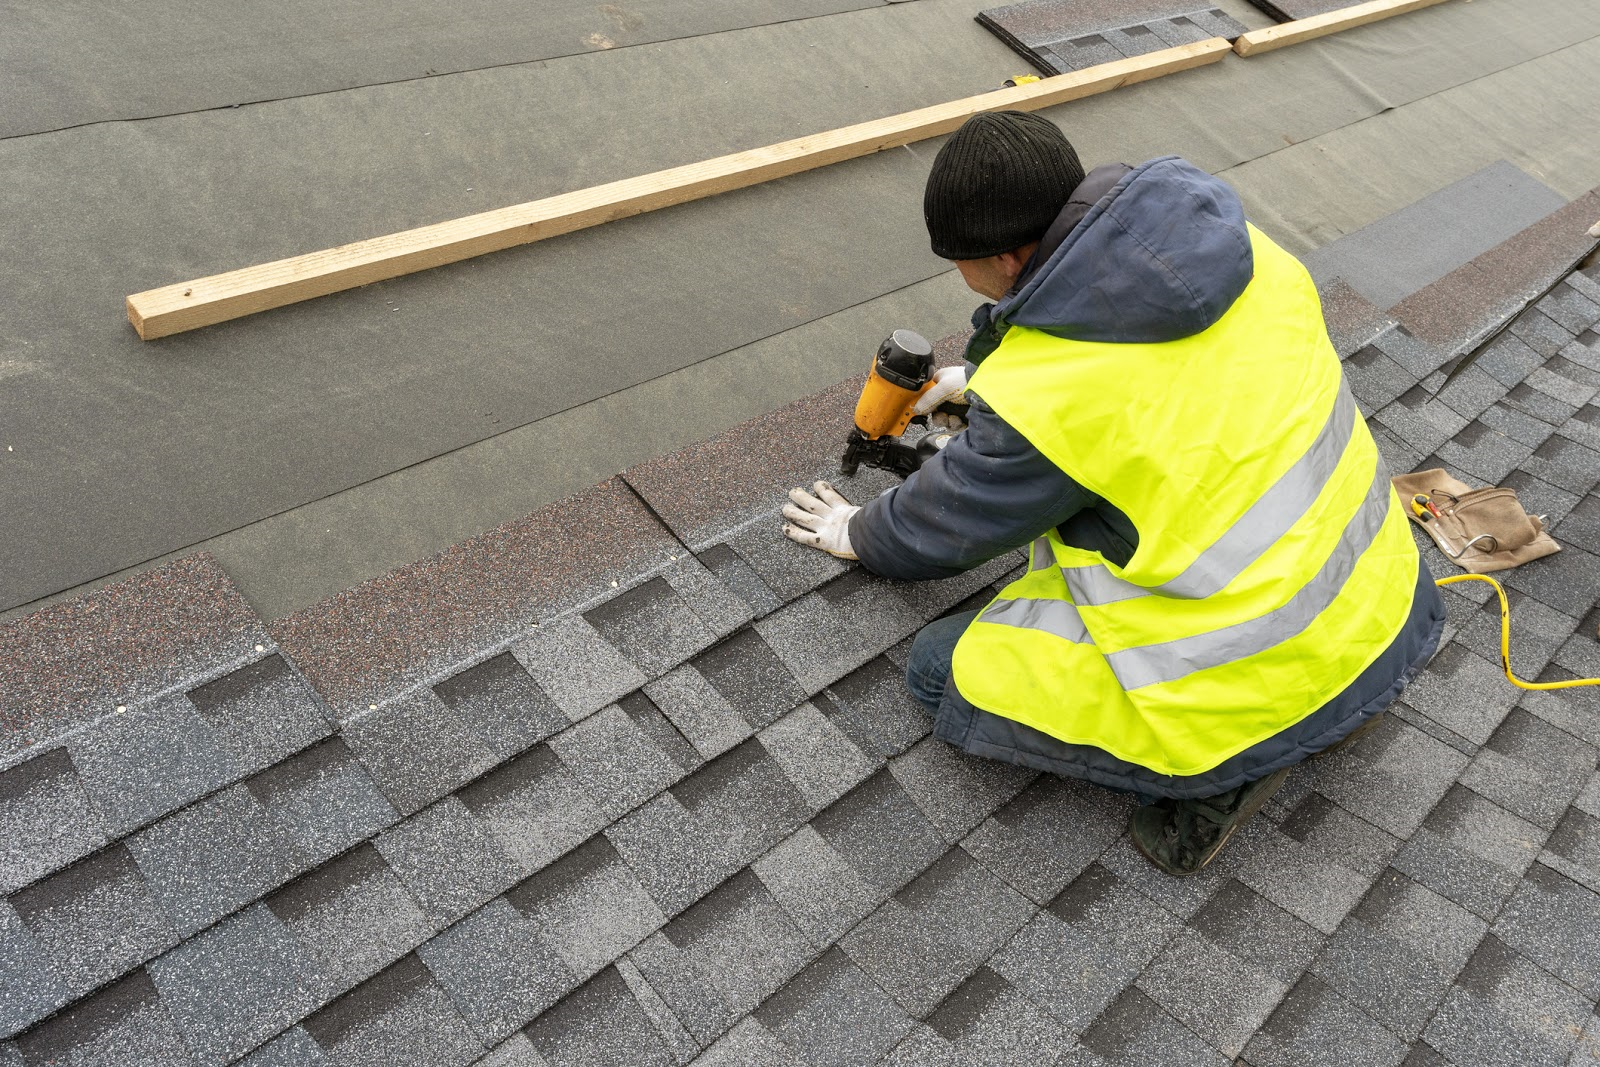 Installing Shingles in Cold Weather